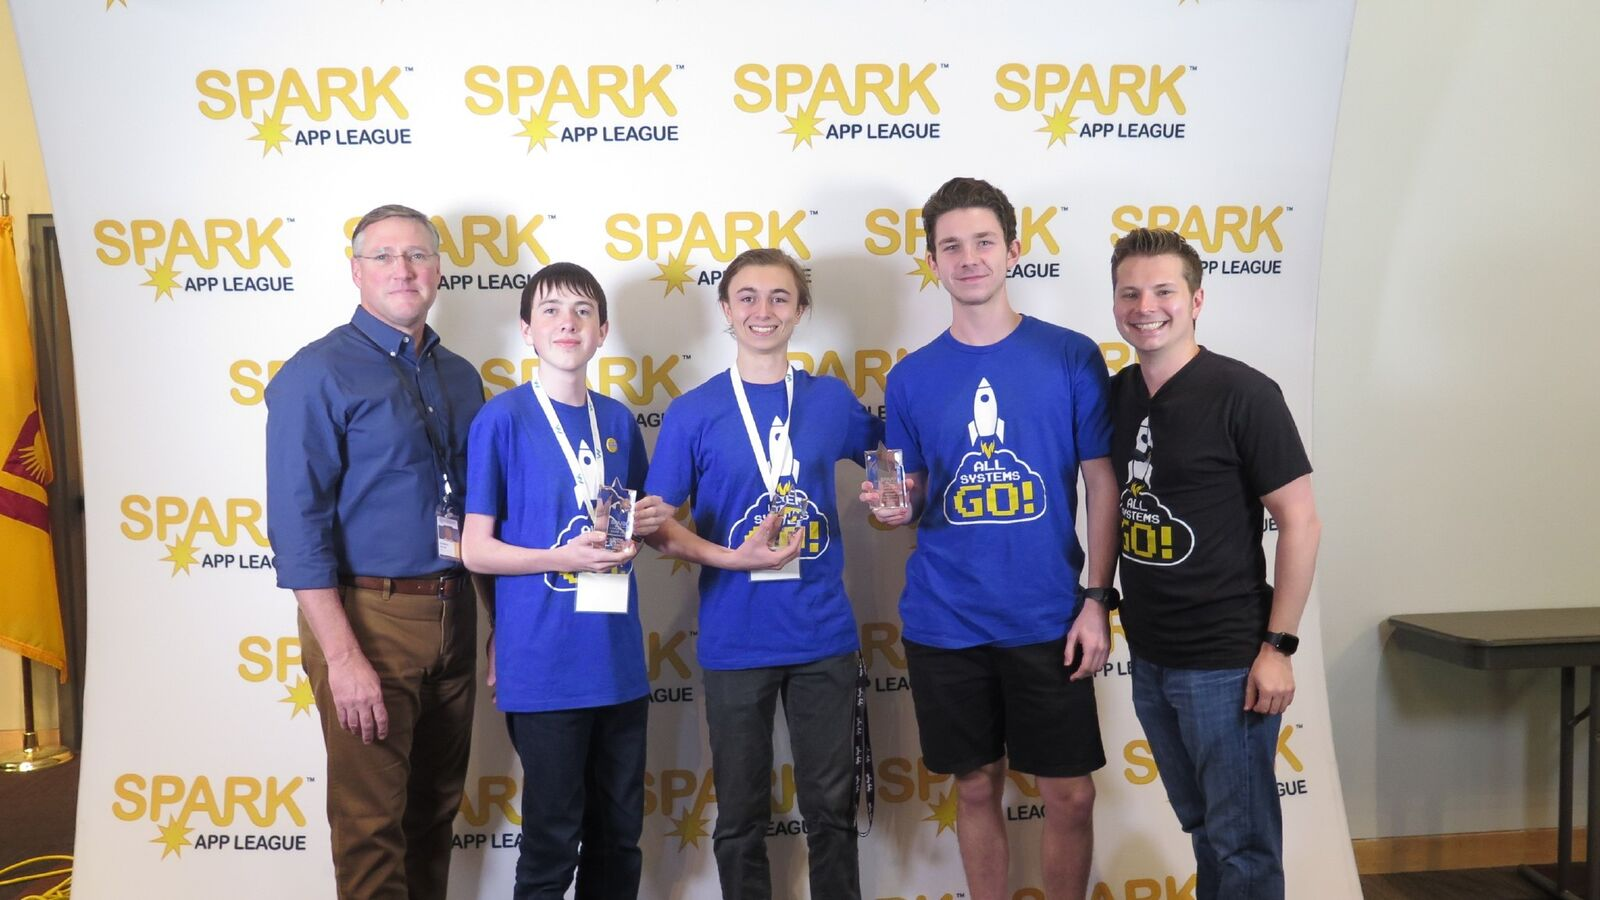 More Than Two Dozen Higley And Williams Field High School Students From Gilbert And Queen Creek Took Part In The 2018 SPARK App Game Jam In September, Organized By The Town Of Gilbert As A Way To Spark Creativity And Imagination Using A Medium Familiar With Today's Teens: Video Game Apps. The Winning Team Was Made Up Of Seniors Daniel Pickering, Brady Jenkins And Dylan Franzen. Photo Courtesy Higley High School